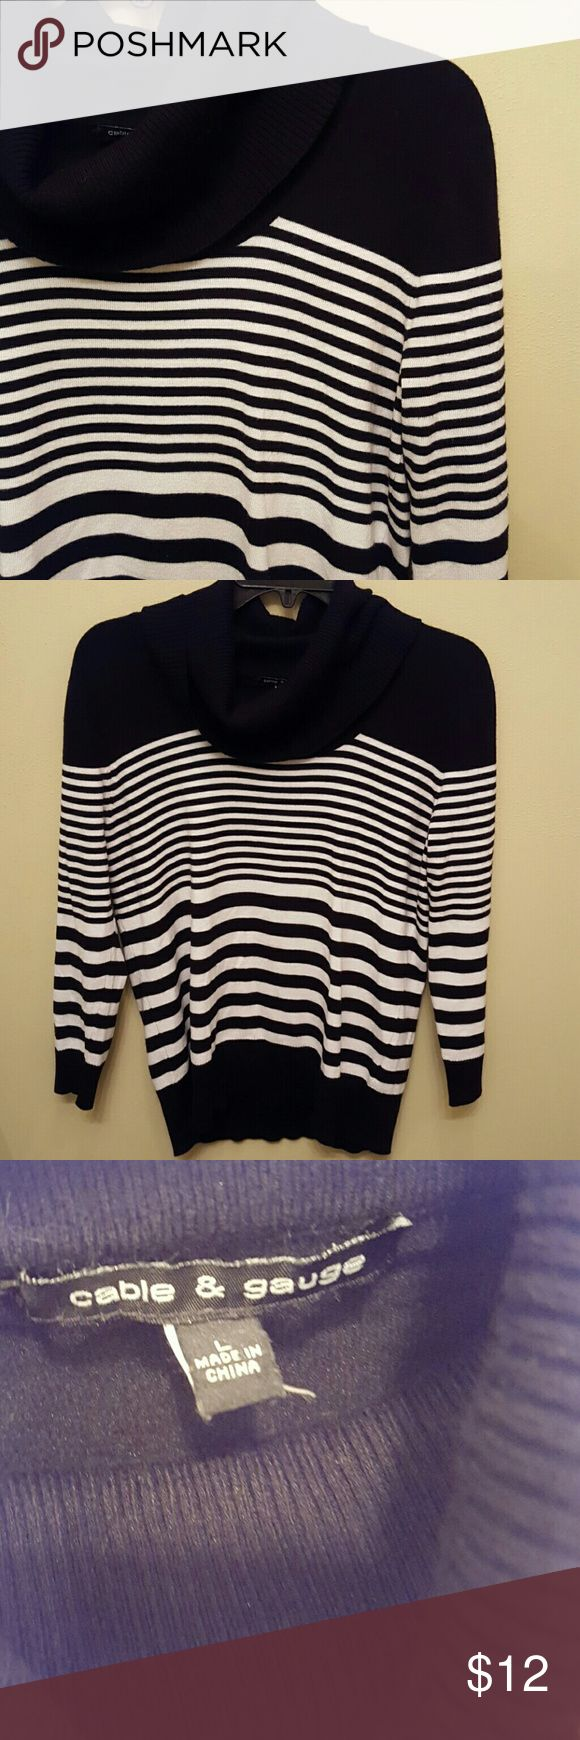 Cable & Gauge Black And White Striped Top Slouchy neck, excellent condition! No stains, no odor, no pulls, no holes! Size Large. Cable & Gauge Tops